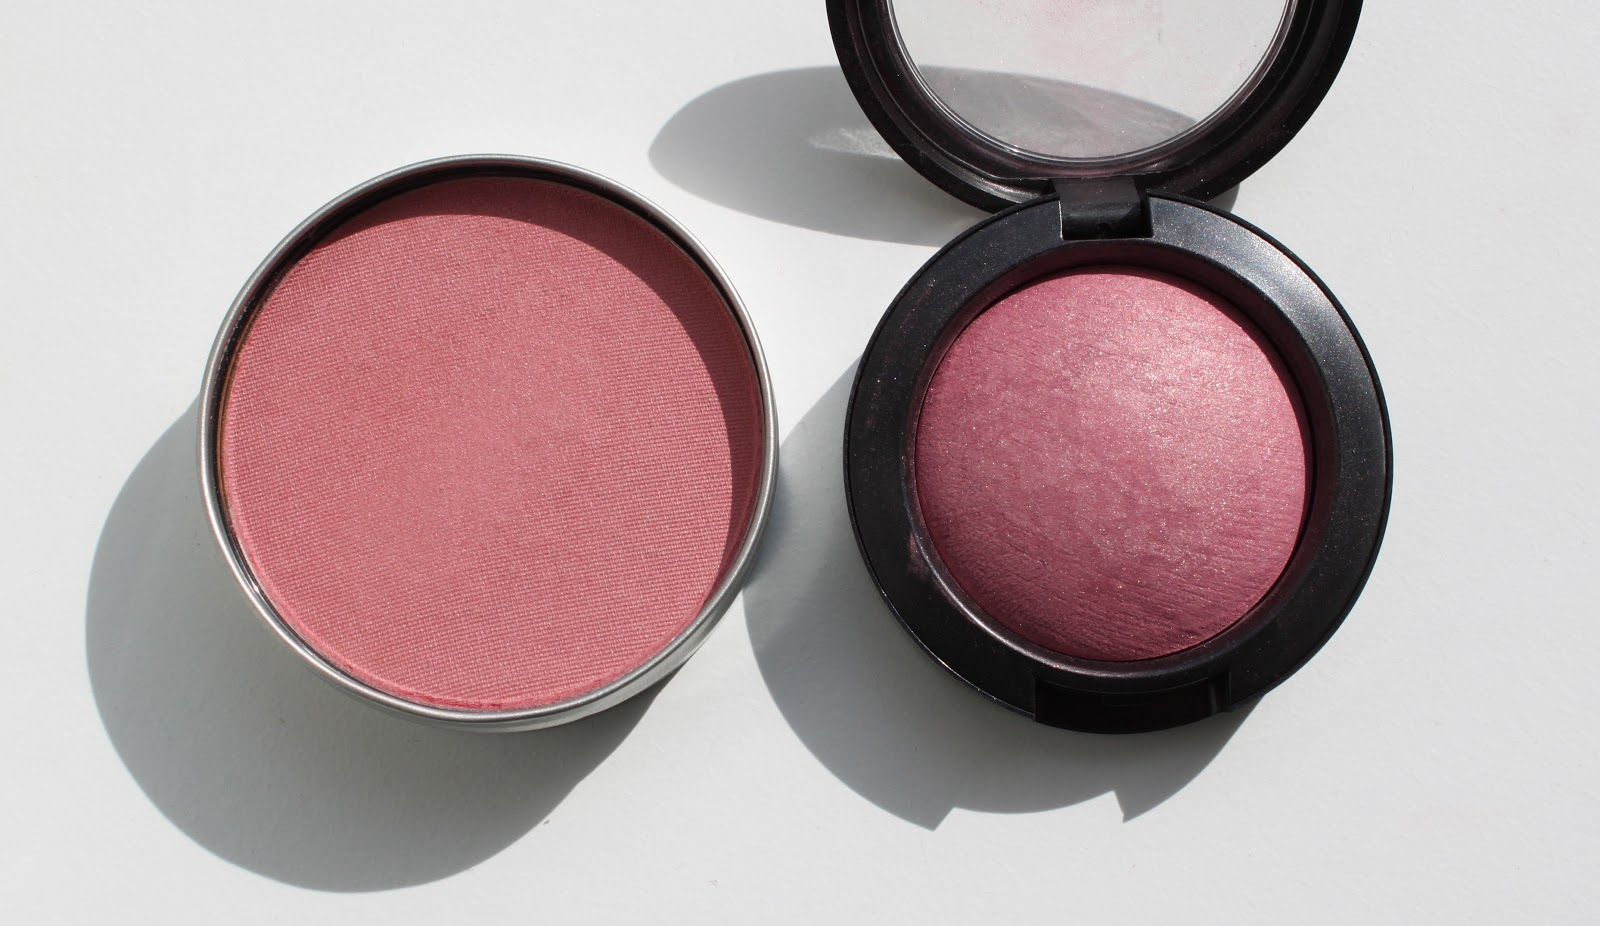 A blush that builds lightly, layer after layer, without heavy coverage.